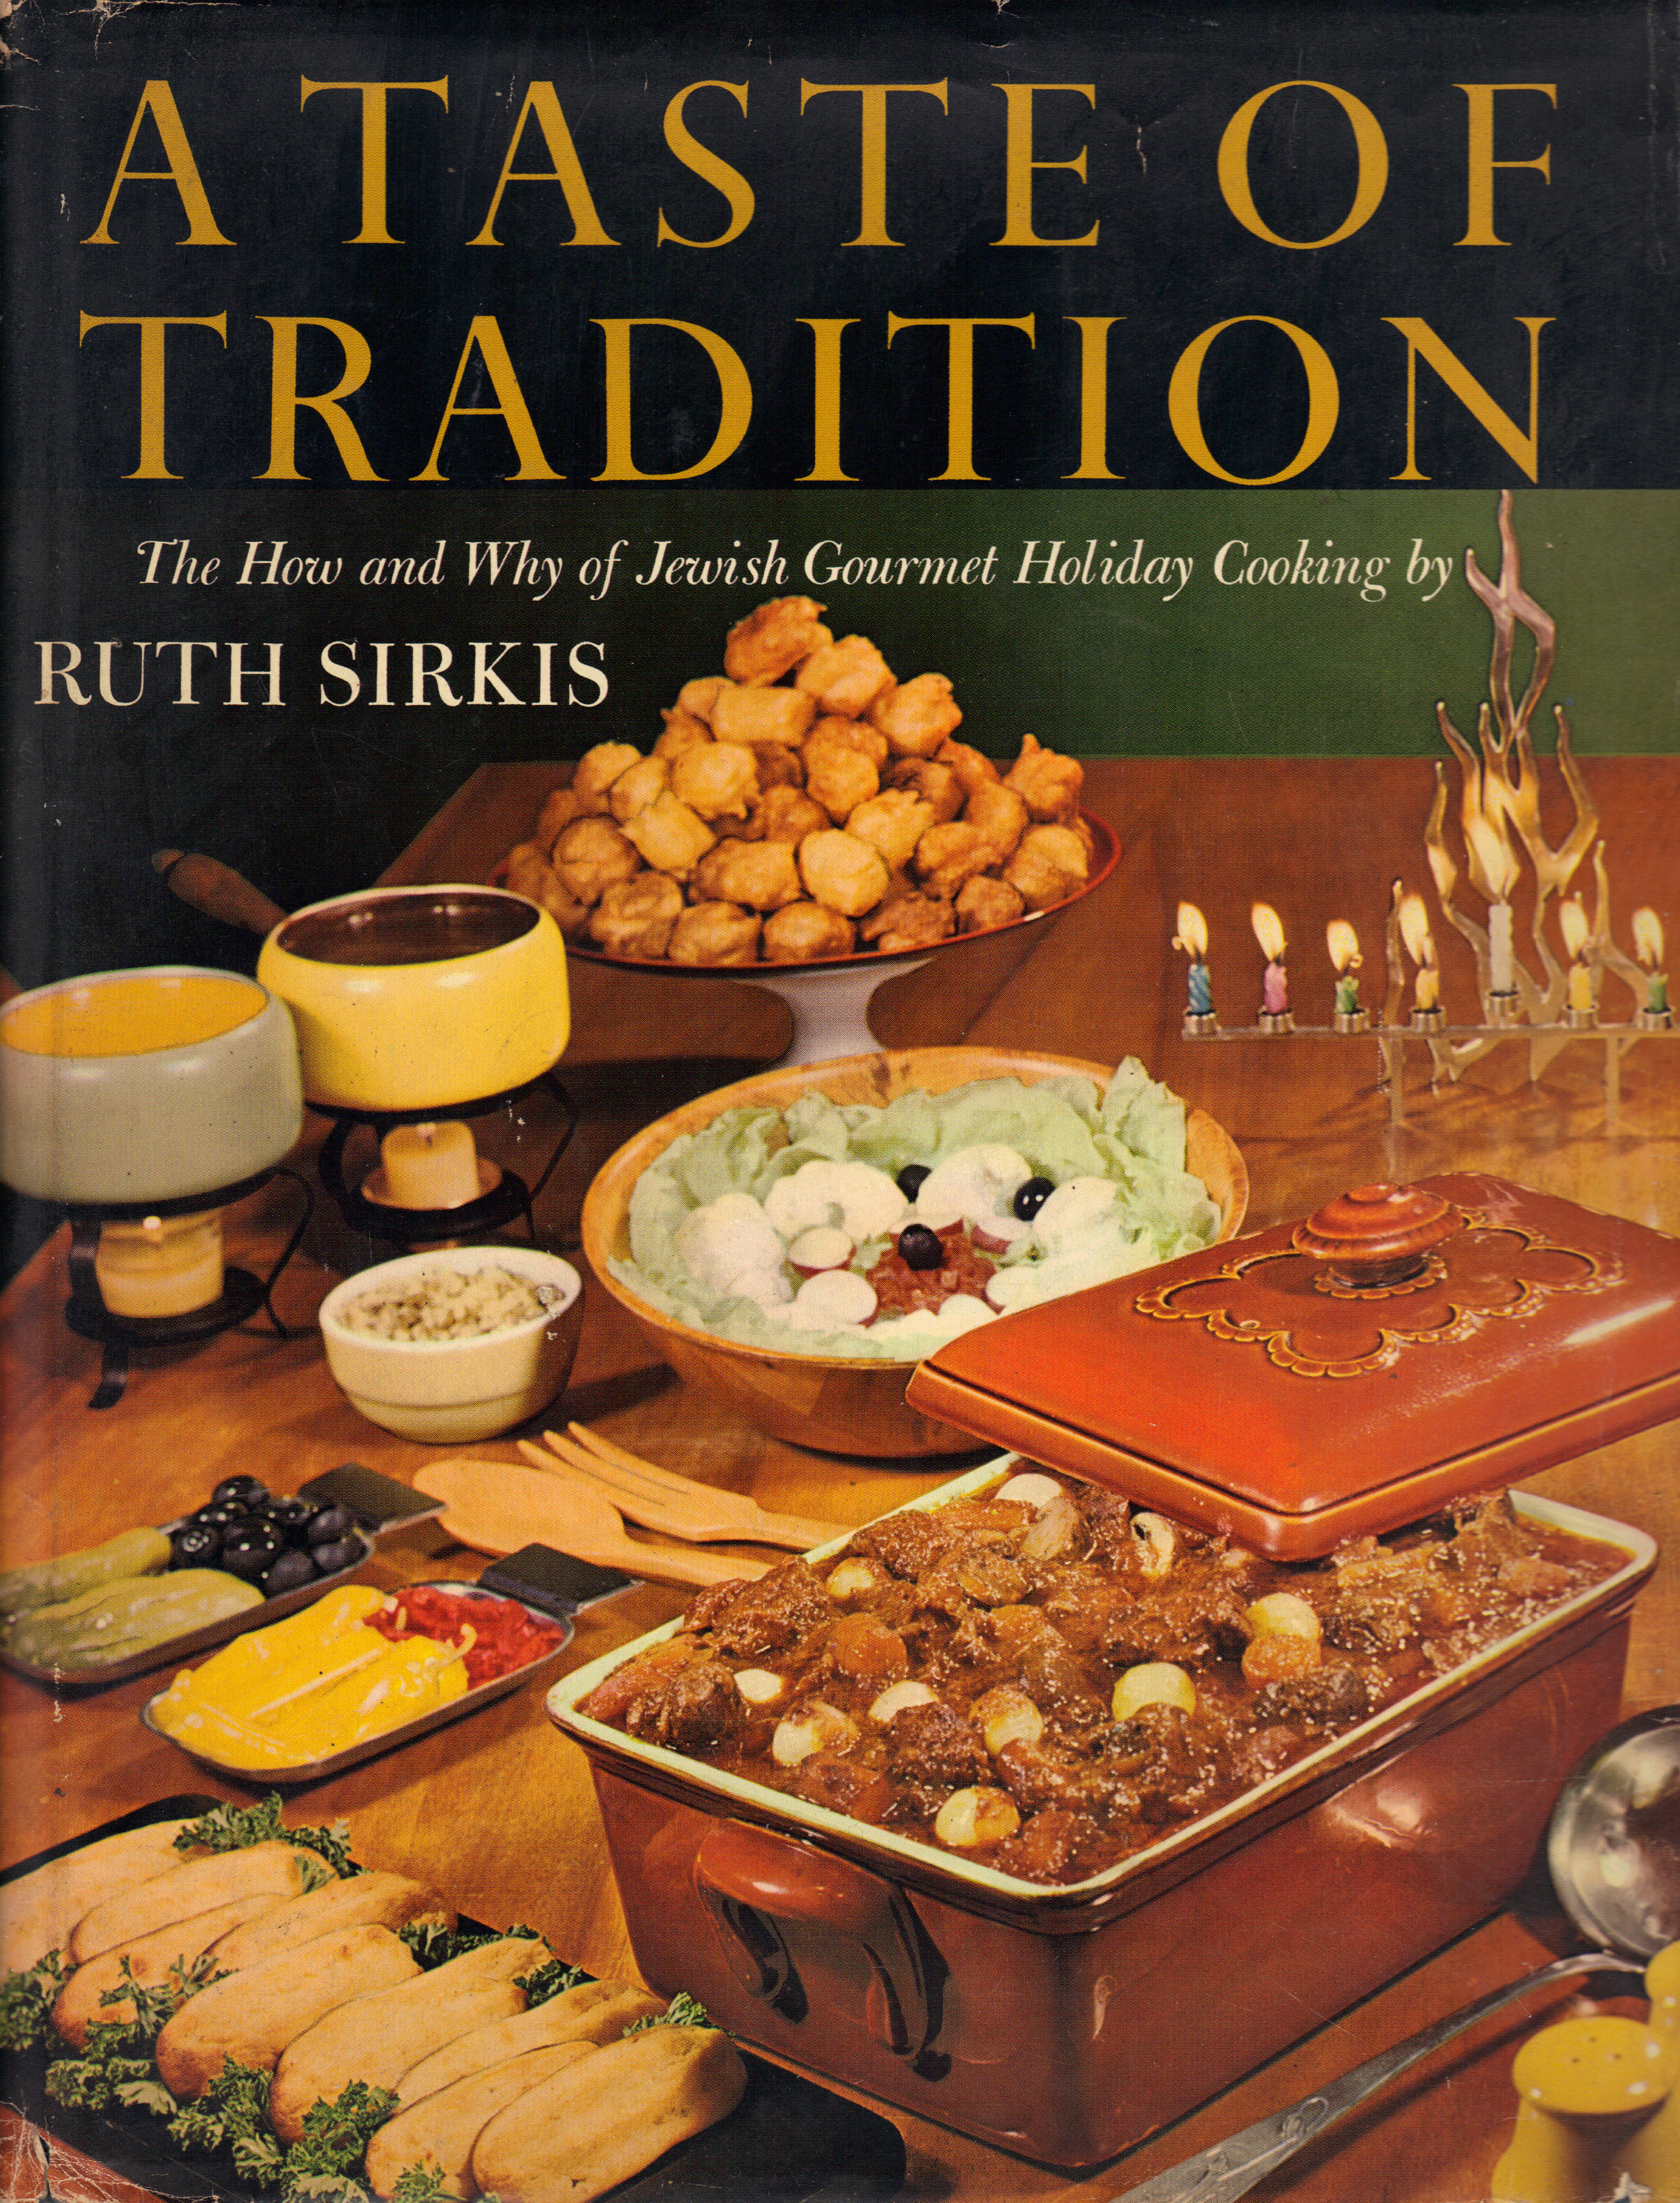 Image for A TASTE OF TRADITION ~ The How and Why of Jewish Gourmet Holiday Cooking